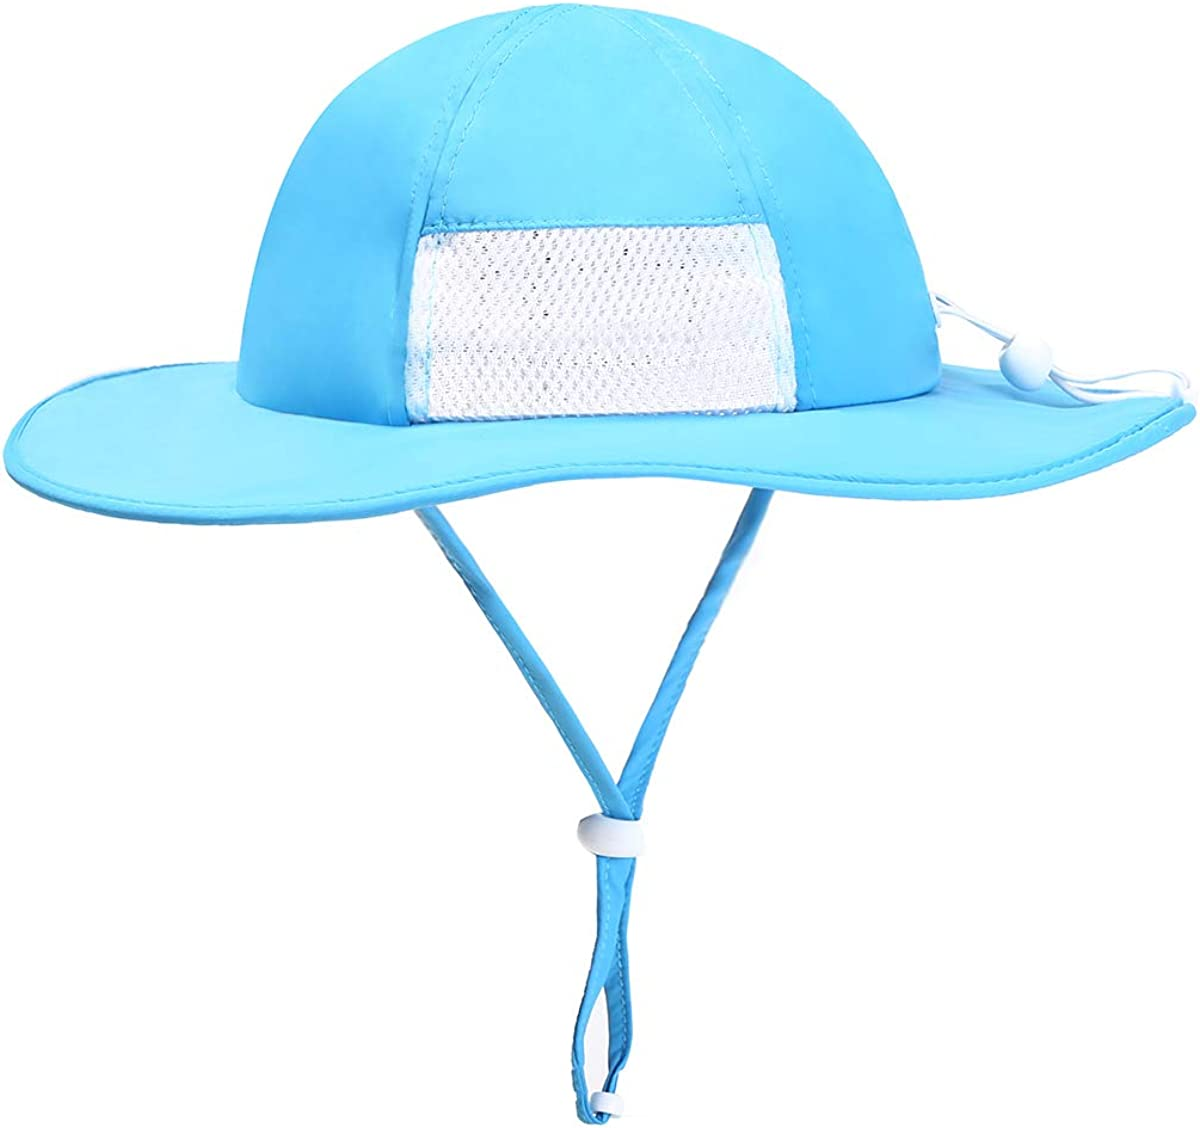 ZZLAY Wide Brim Sun Hat SPF 50 UV Protection Breathable Adjustable Cap for Baby Toddler Kids